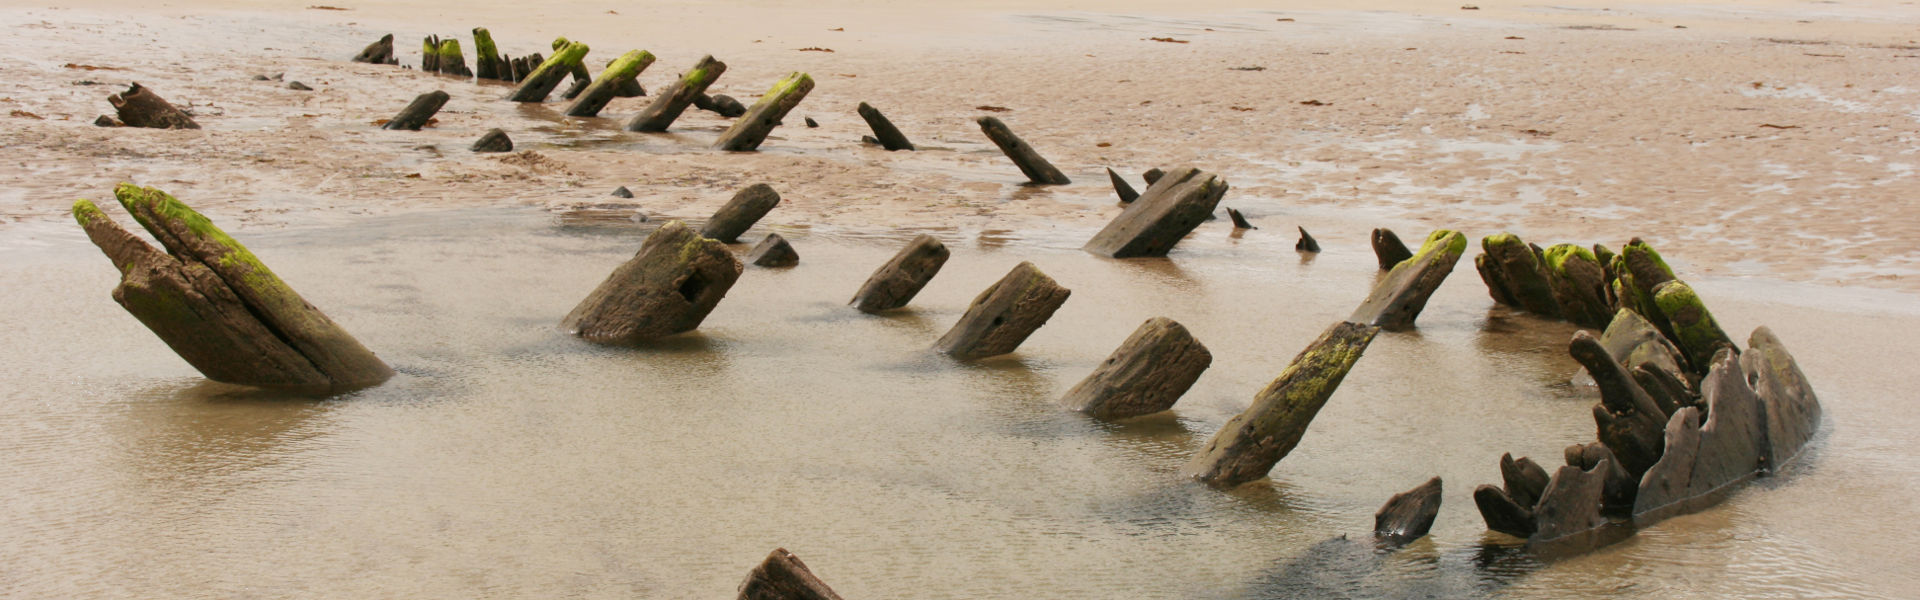 Shipwreck sink into the sand